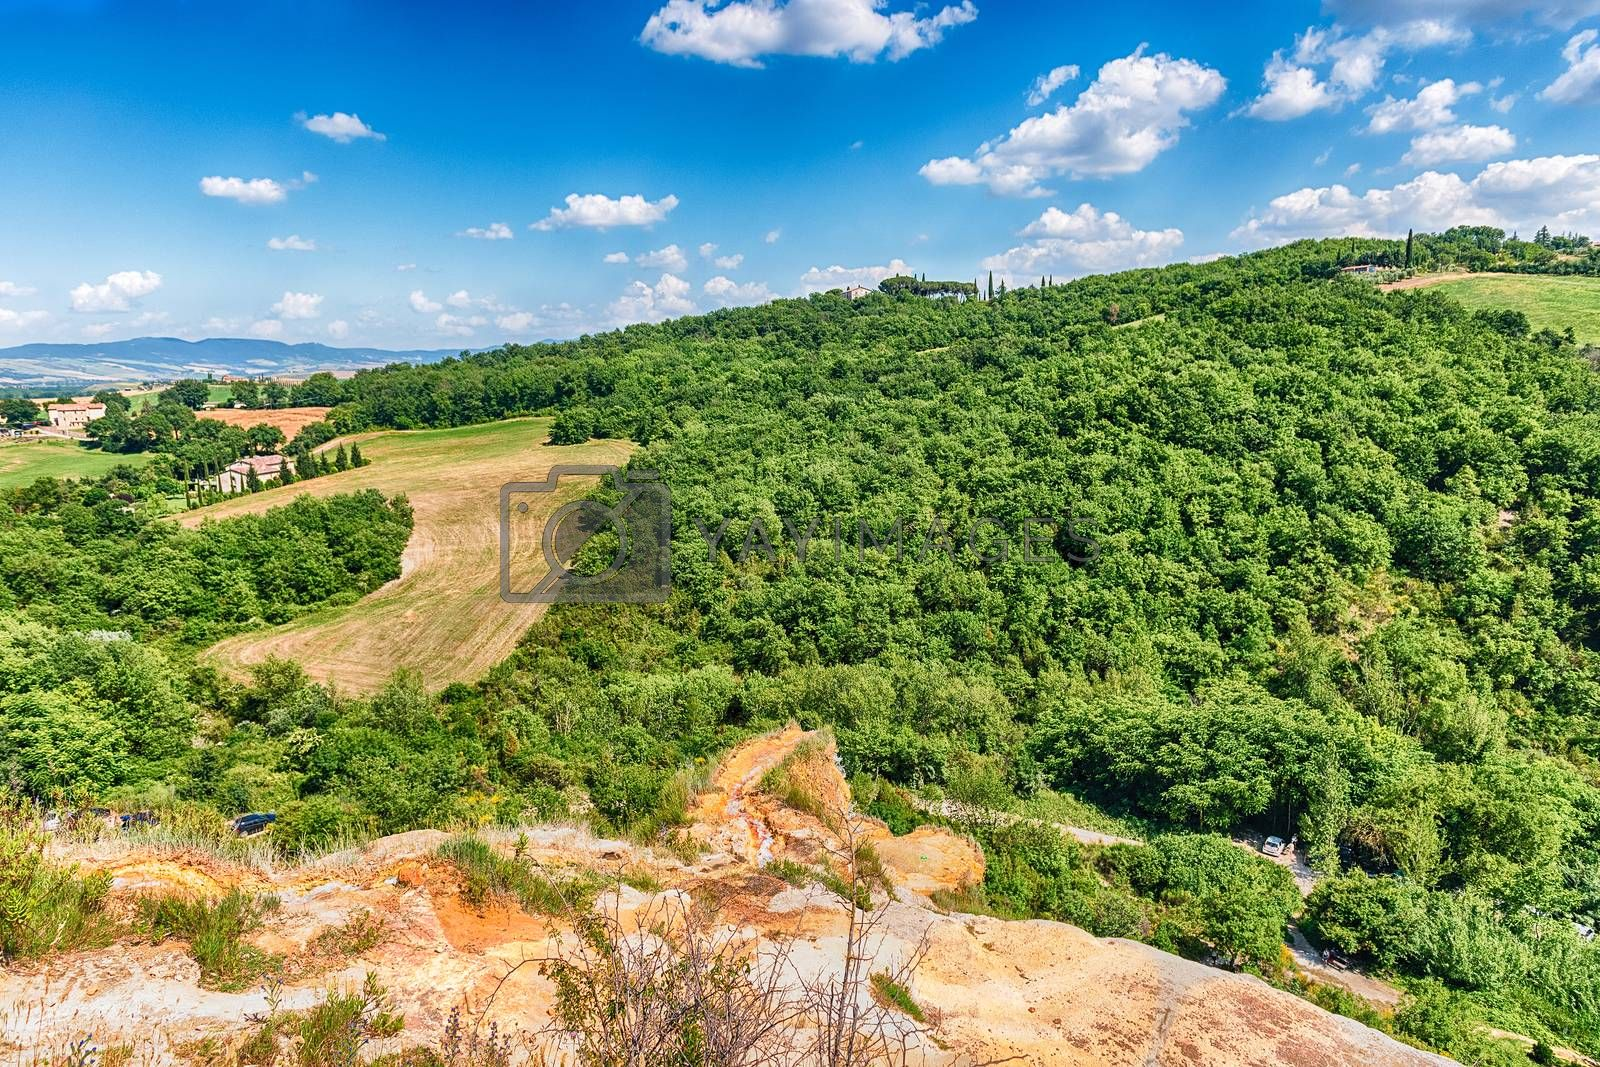 Aerial view of a beautiful landscape around the town of Bagno Vignoni, province of Siena, Tuscany, Italy